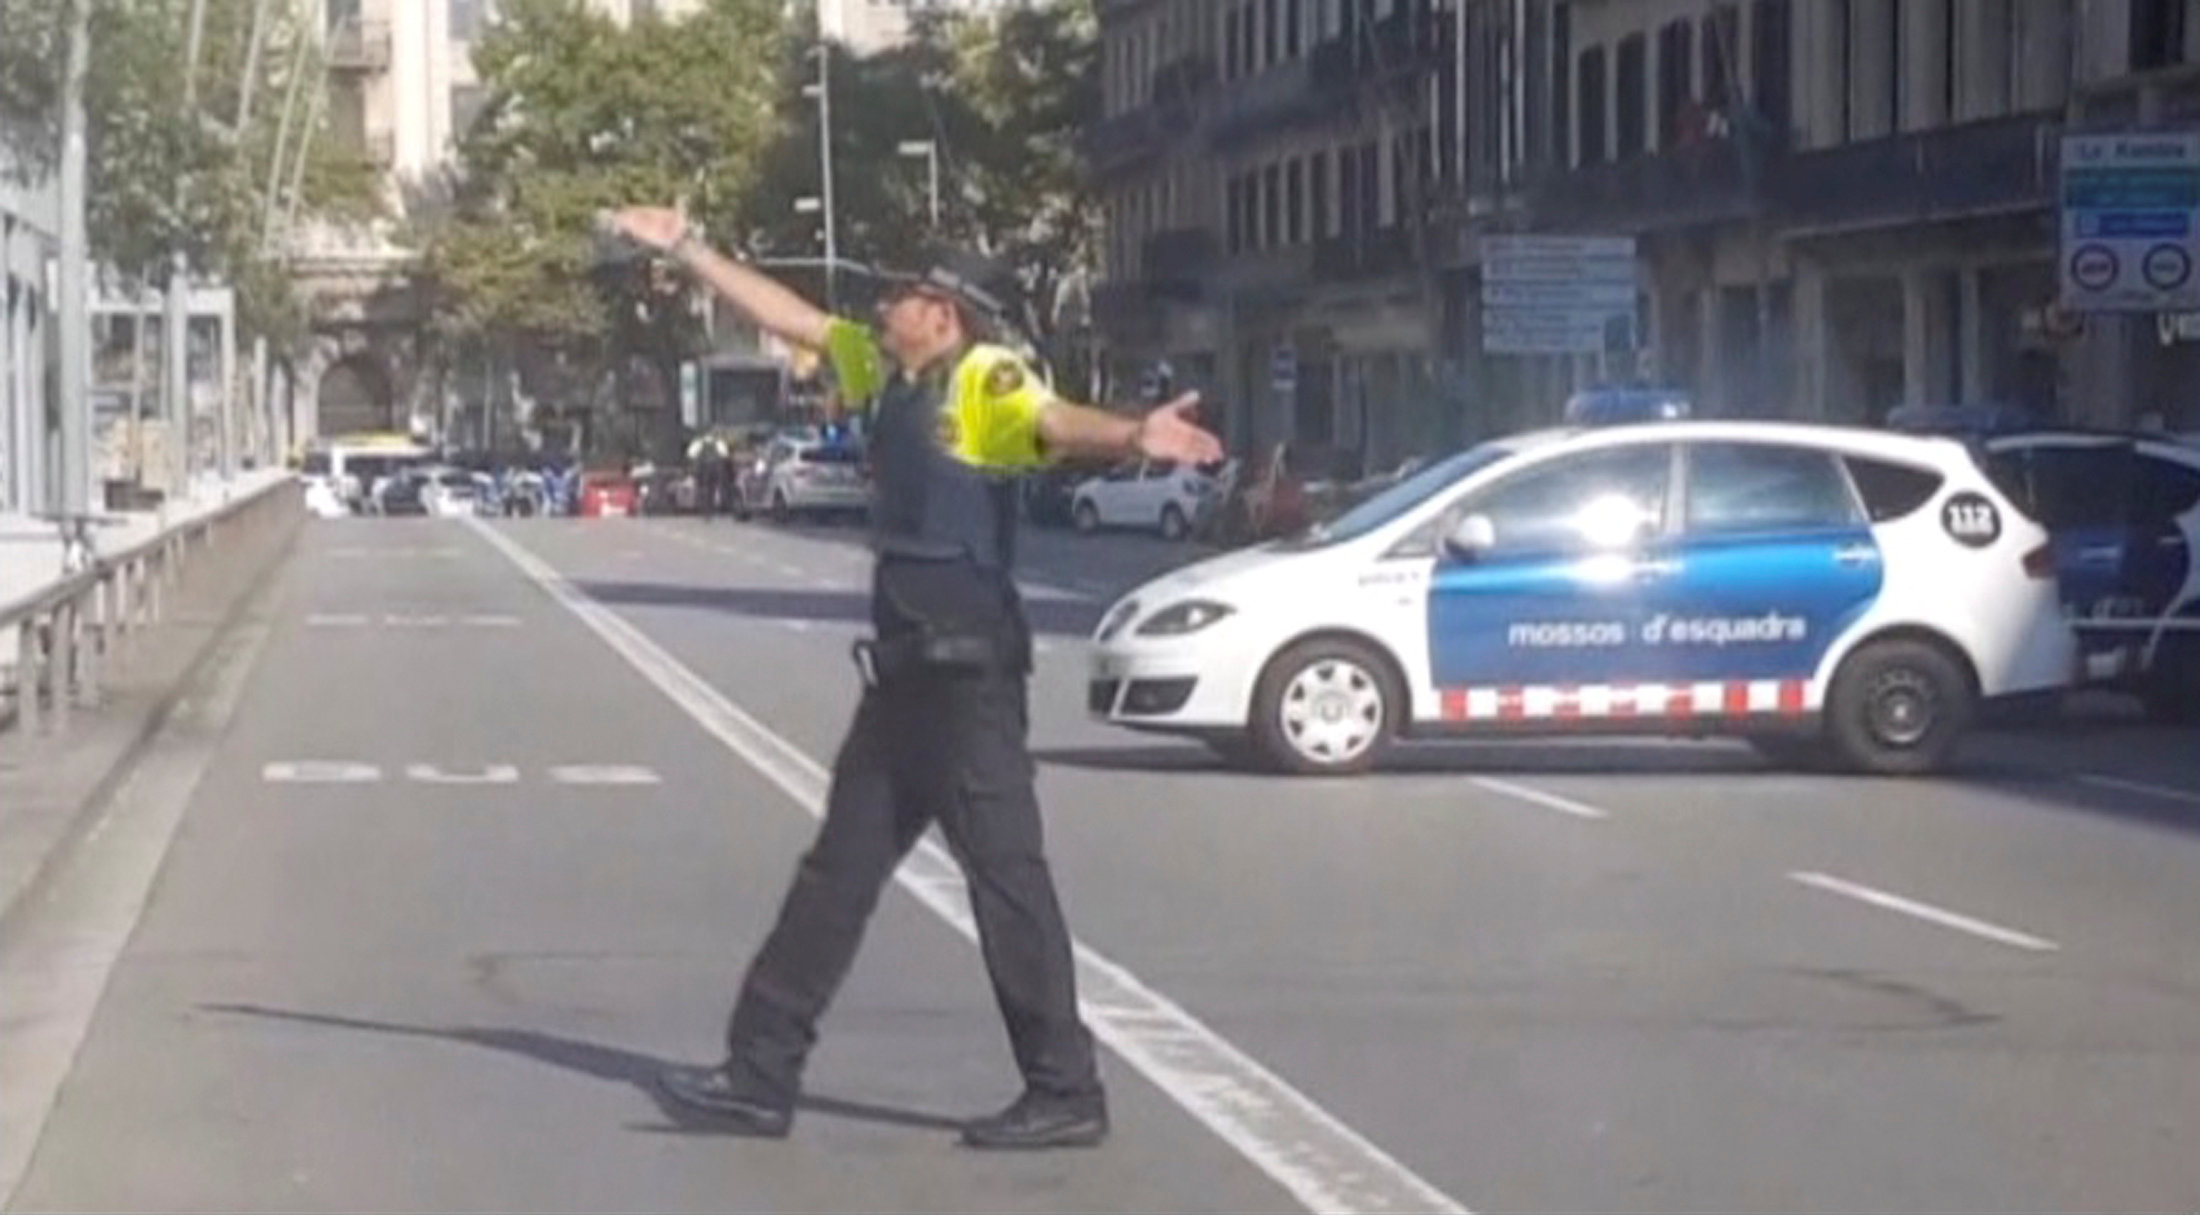 A still image from video shows a police officer gesturing while walking across a road, after a van crashed into people in the centre of Barcelona, Spain on Aug. 17, 2017. (REUTERS TV via REUTERS)